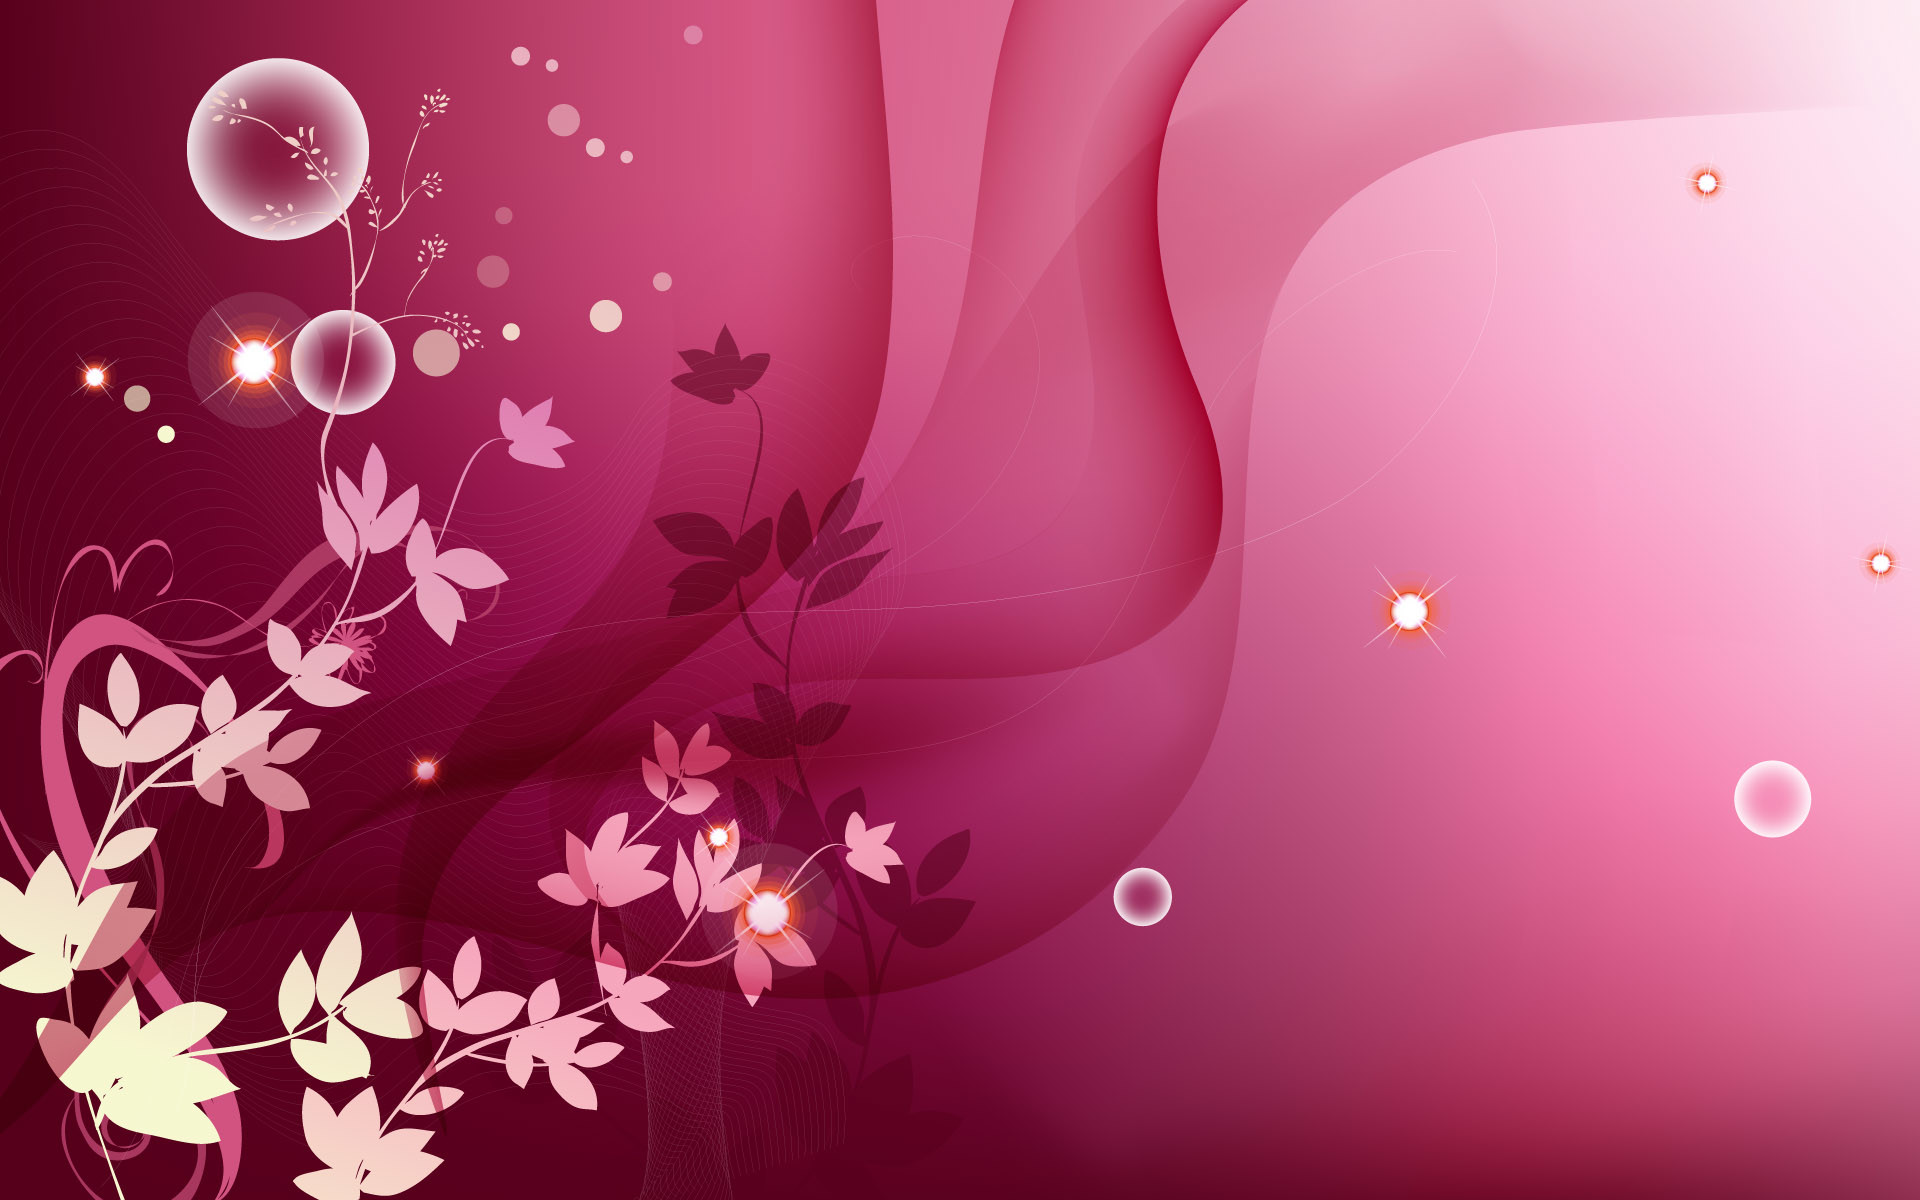 cute, wallpapers, wallpaper, pink, background, cool, image